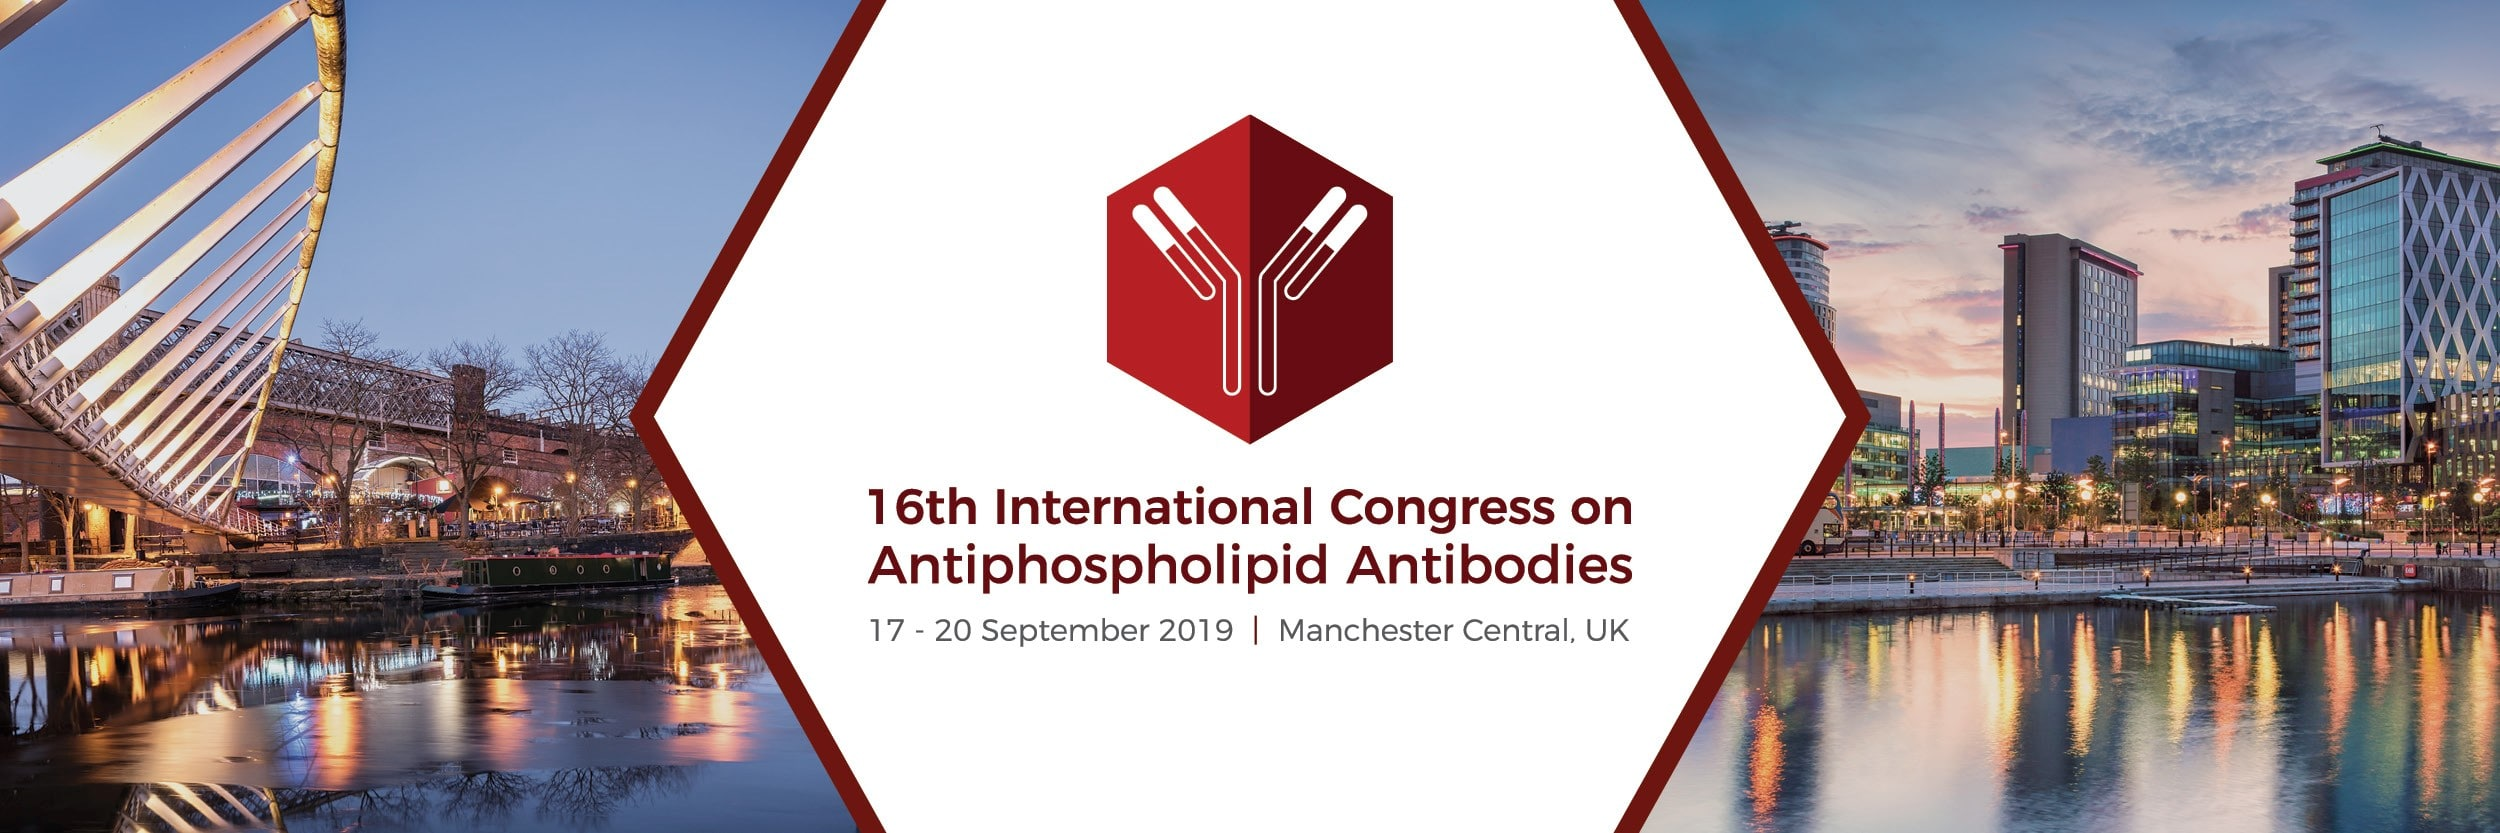 International Congress on Antiphospholipid Antibodies - The Hibbs Lupus Trust